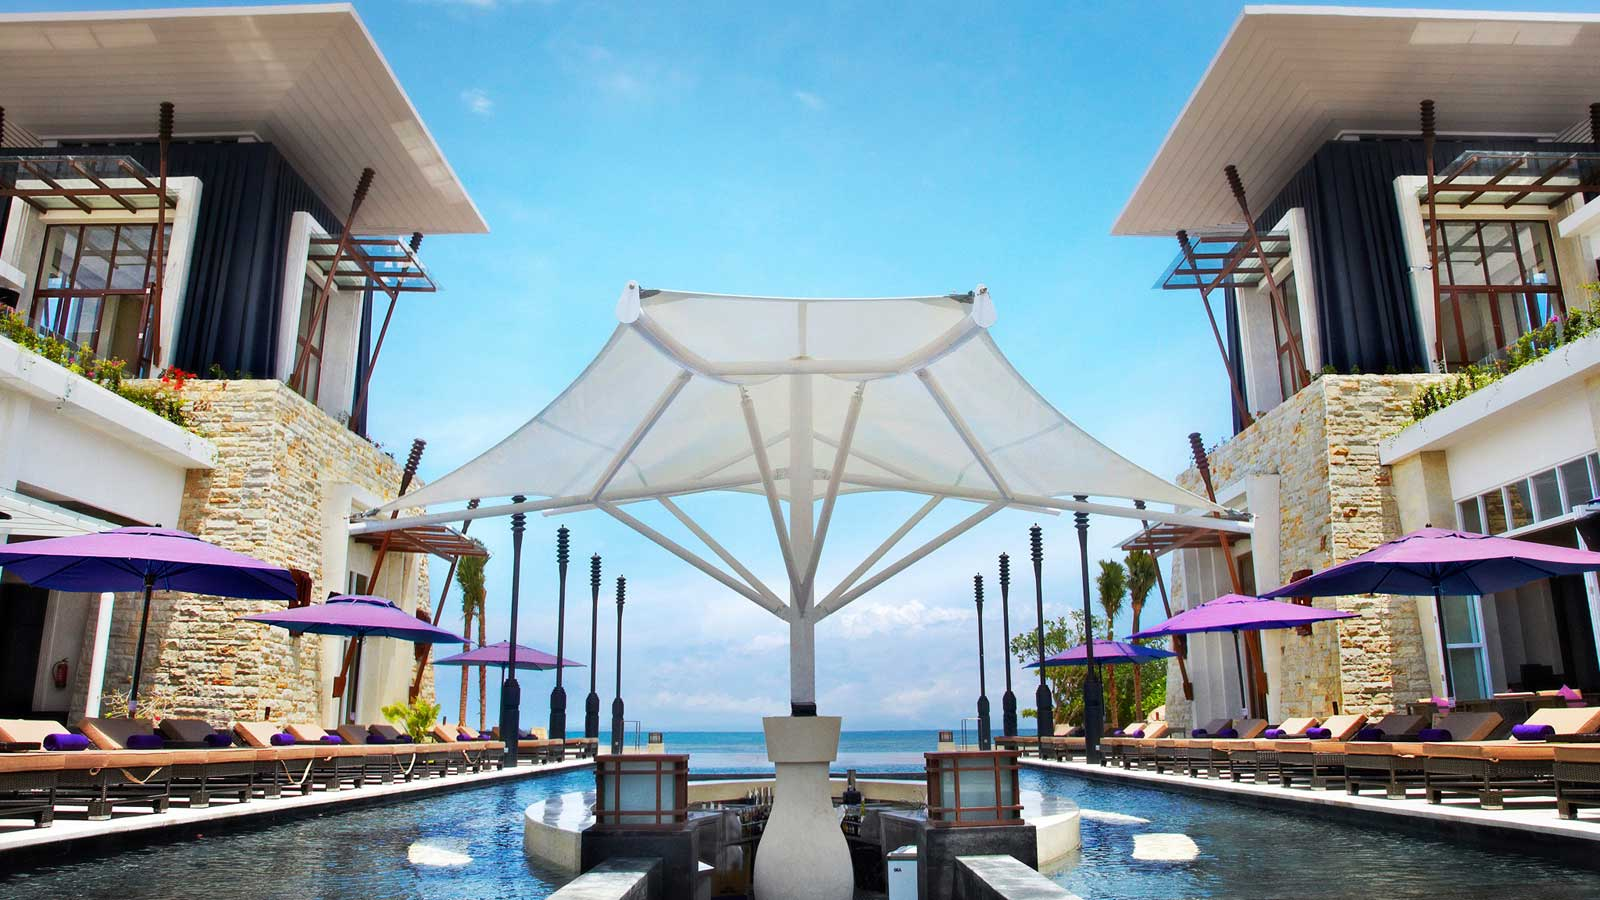 Event Venues Bali | Sakala Beach Club at The Sakala Resort Bali